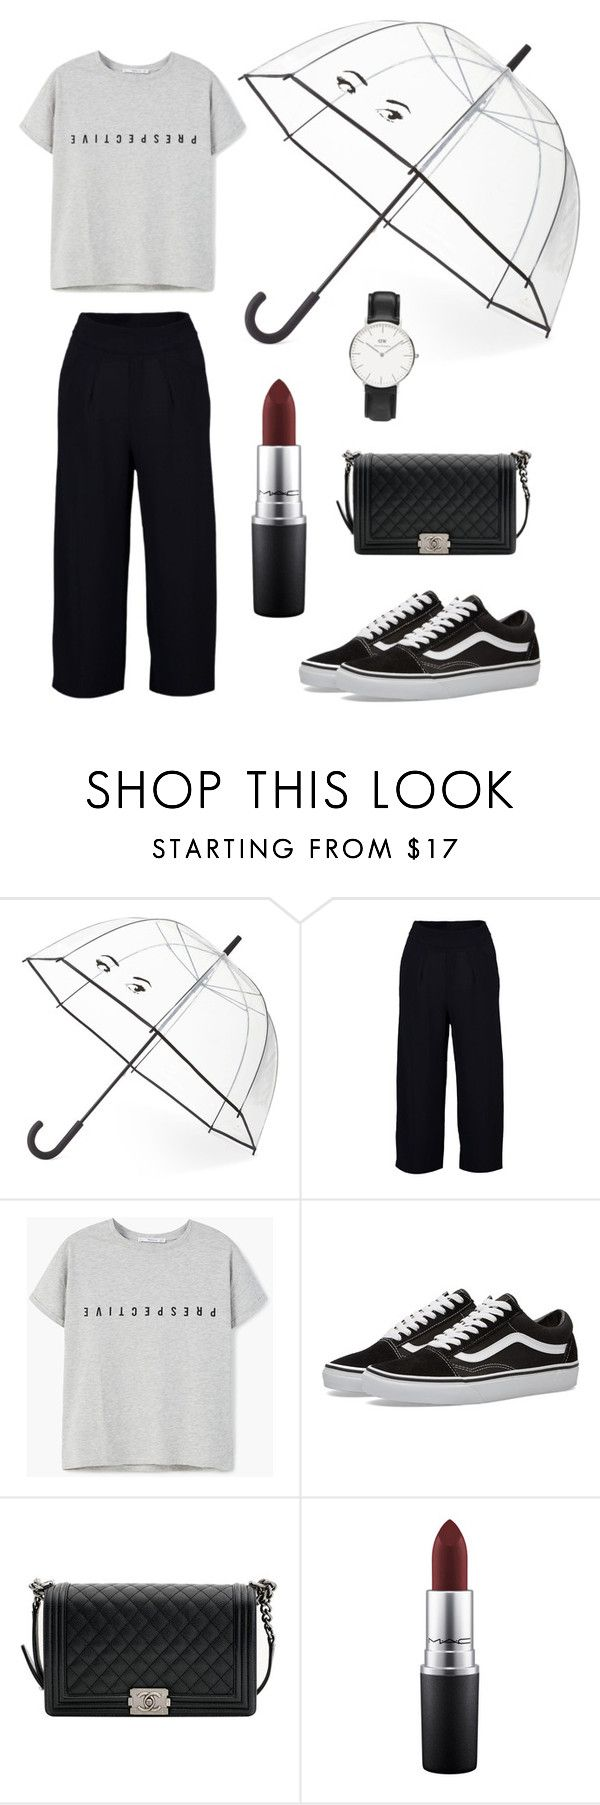 #outfit #chanel #boybag #vans #culottes #trend